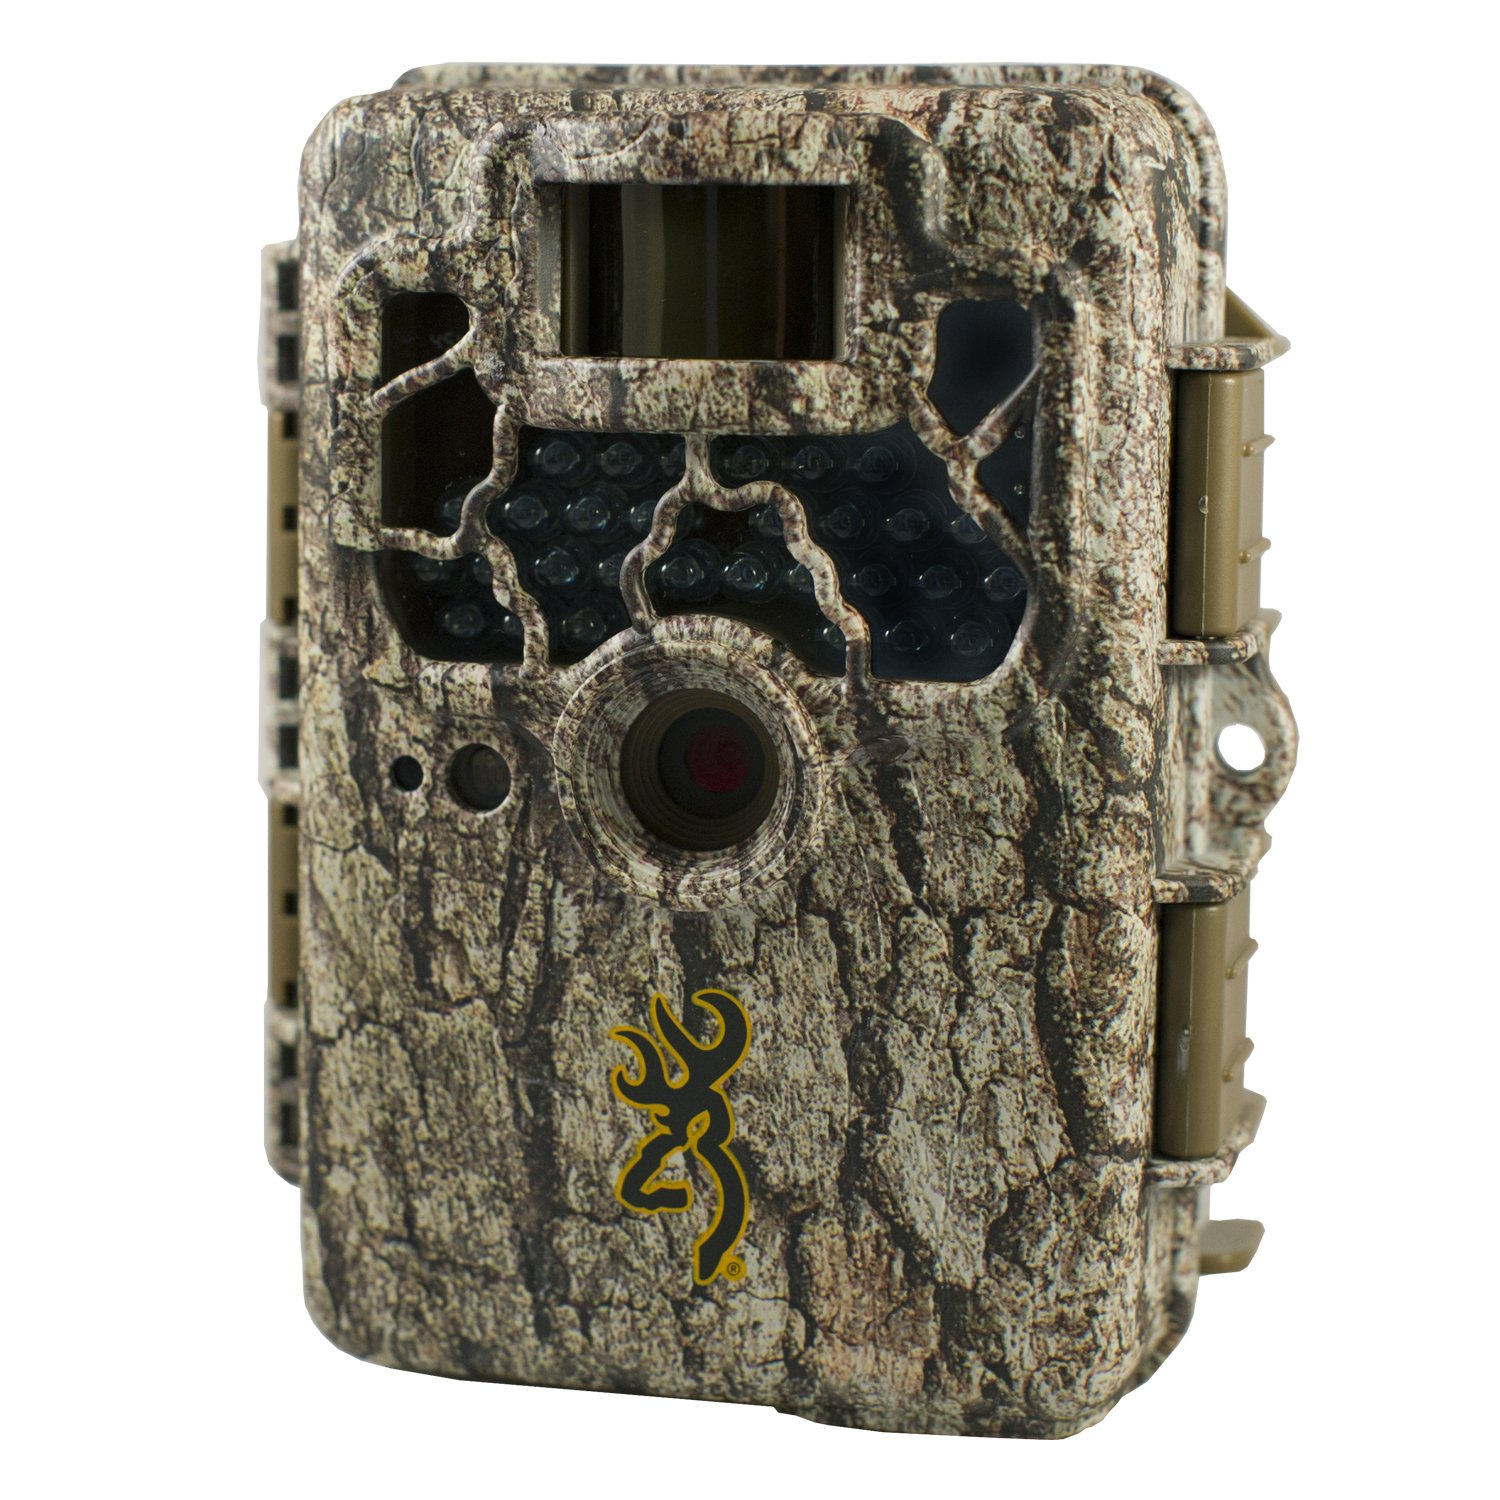 Amazon.com : Browning BTC 2 Trail Force Recon Camera, Camo ...